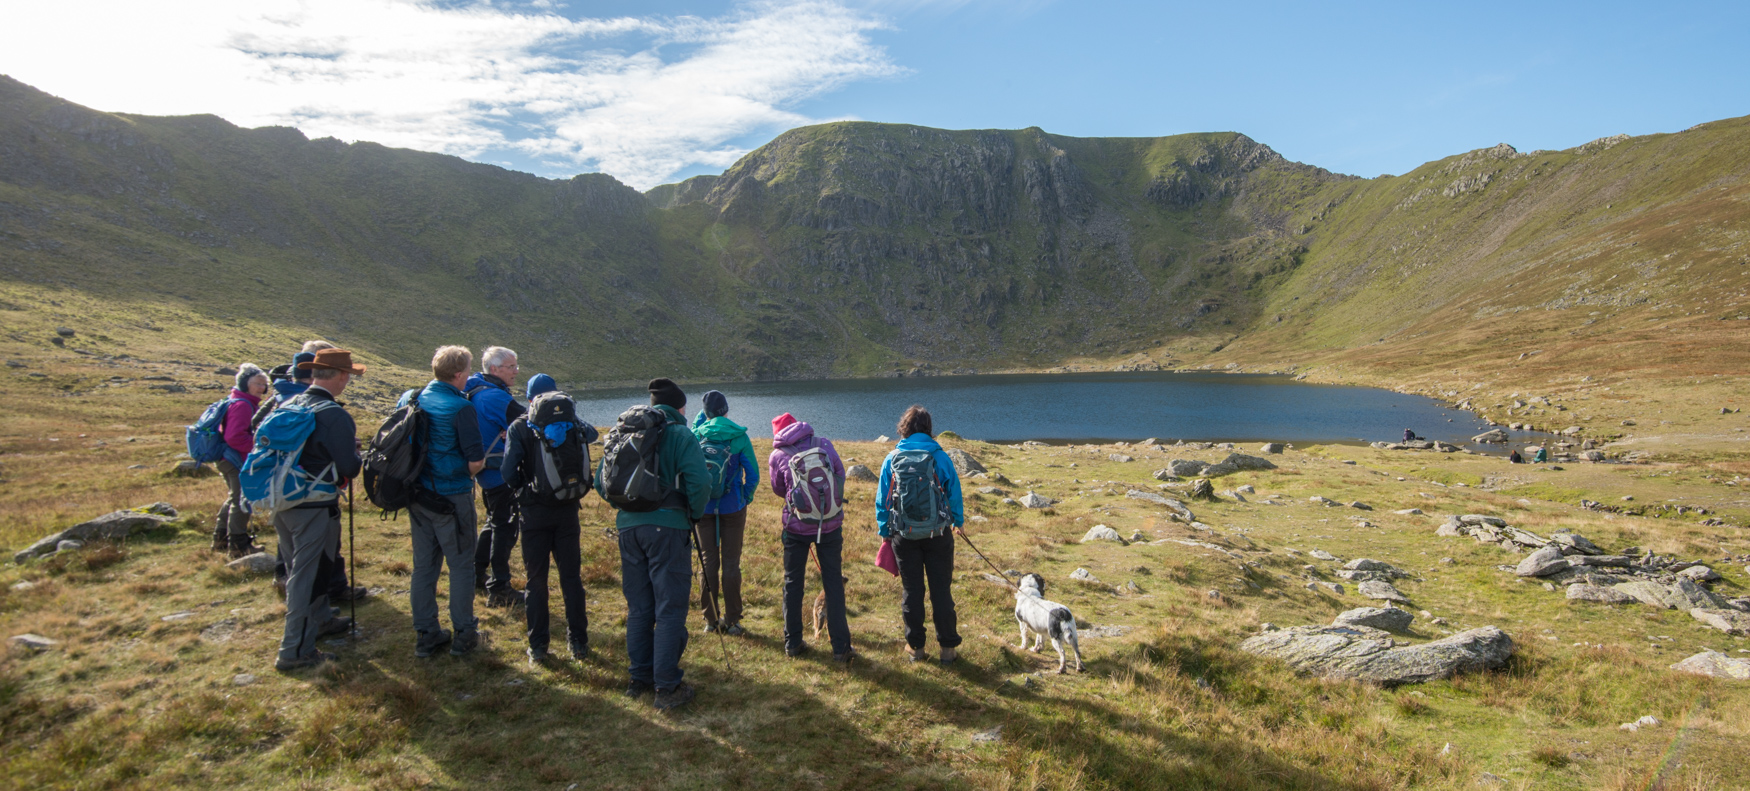 Learning about the work of the John Muir Trust on Glenridding Common through their ranger, Pete Barron in the autumn of 2018. Helvellyn summit can be seen at the back